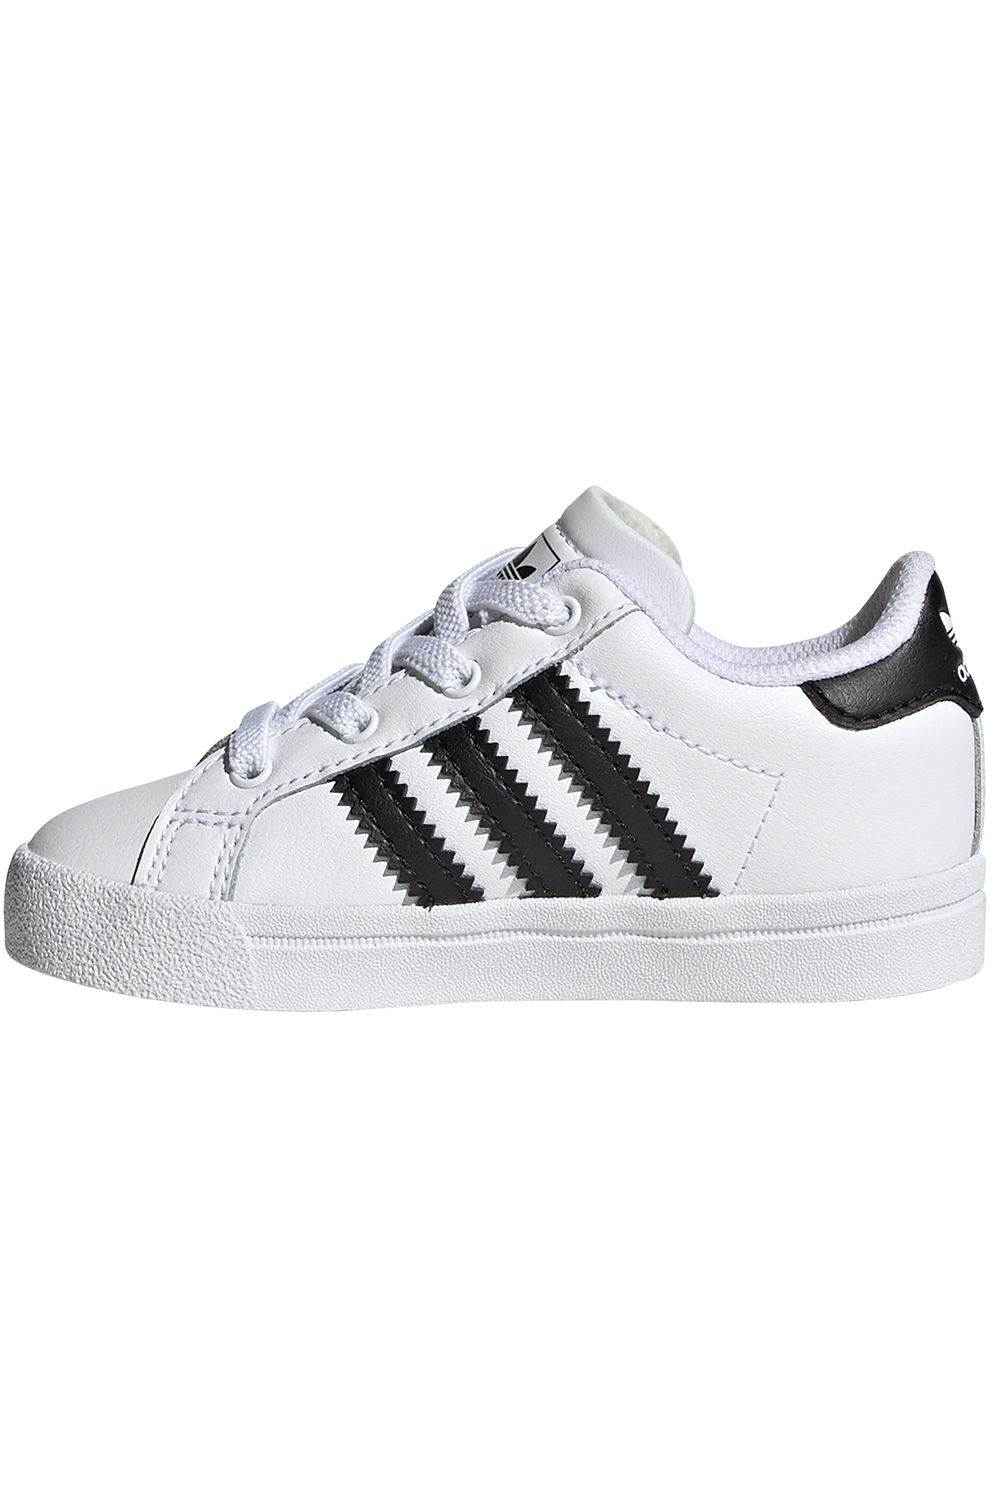 Tenis Adidas COAST STAR EL Ftwr White/Core Black/Ftwr White